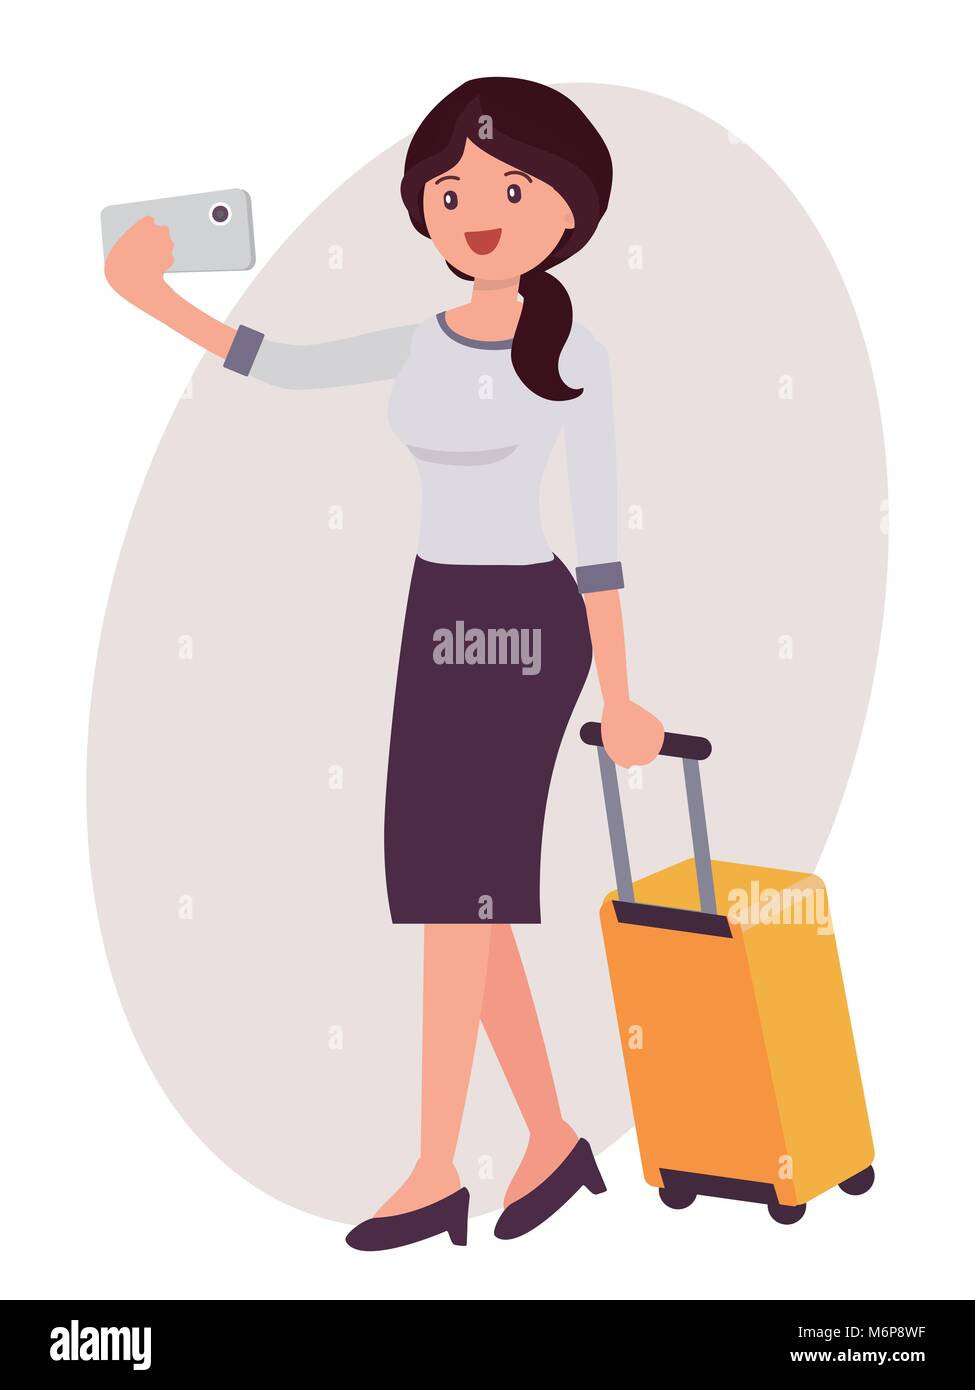 Cartoonsmart Character Design : Cartoon happy office girl cut out stock images pictures